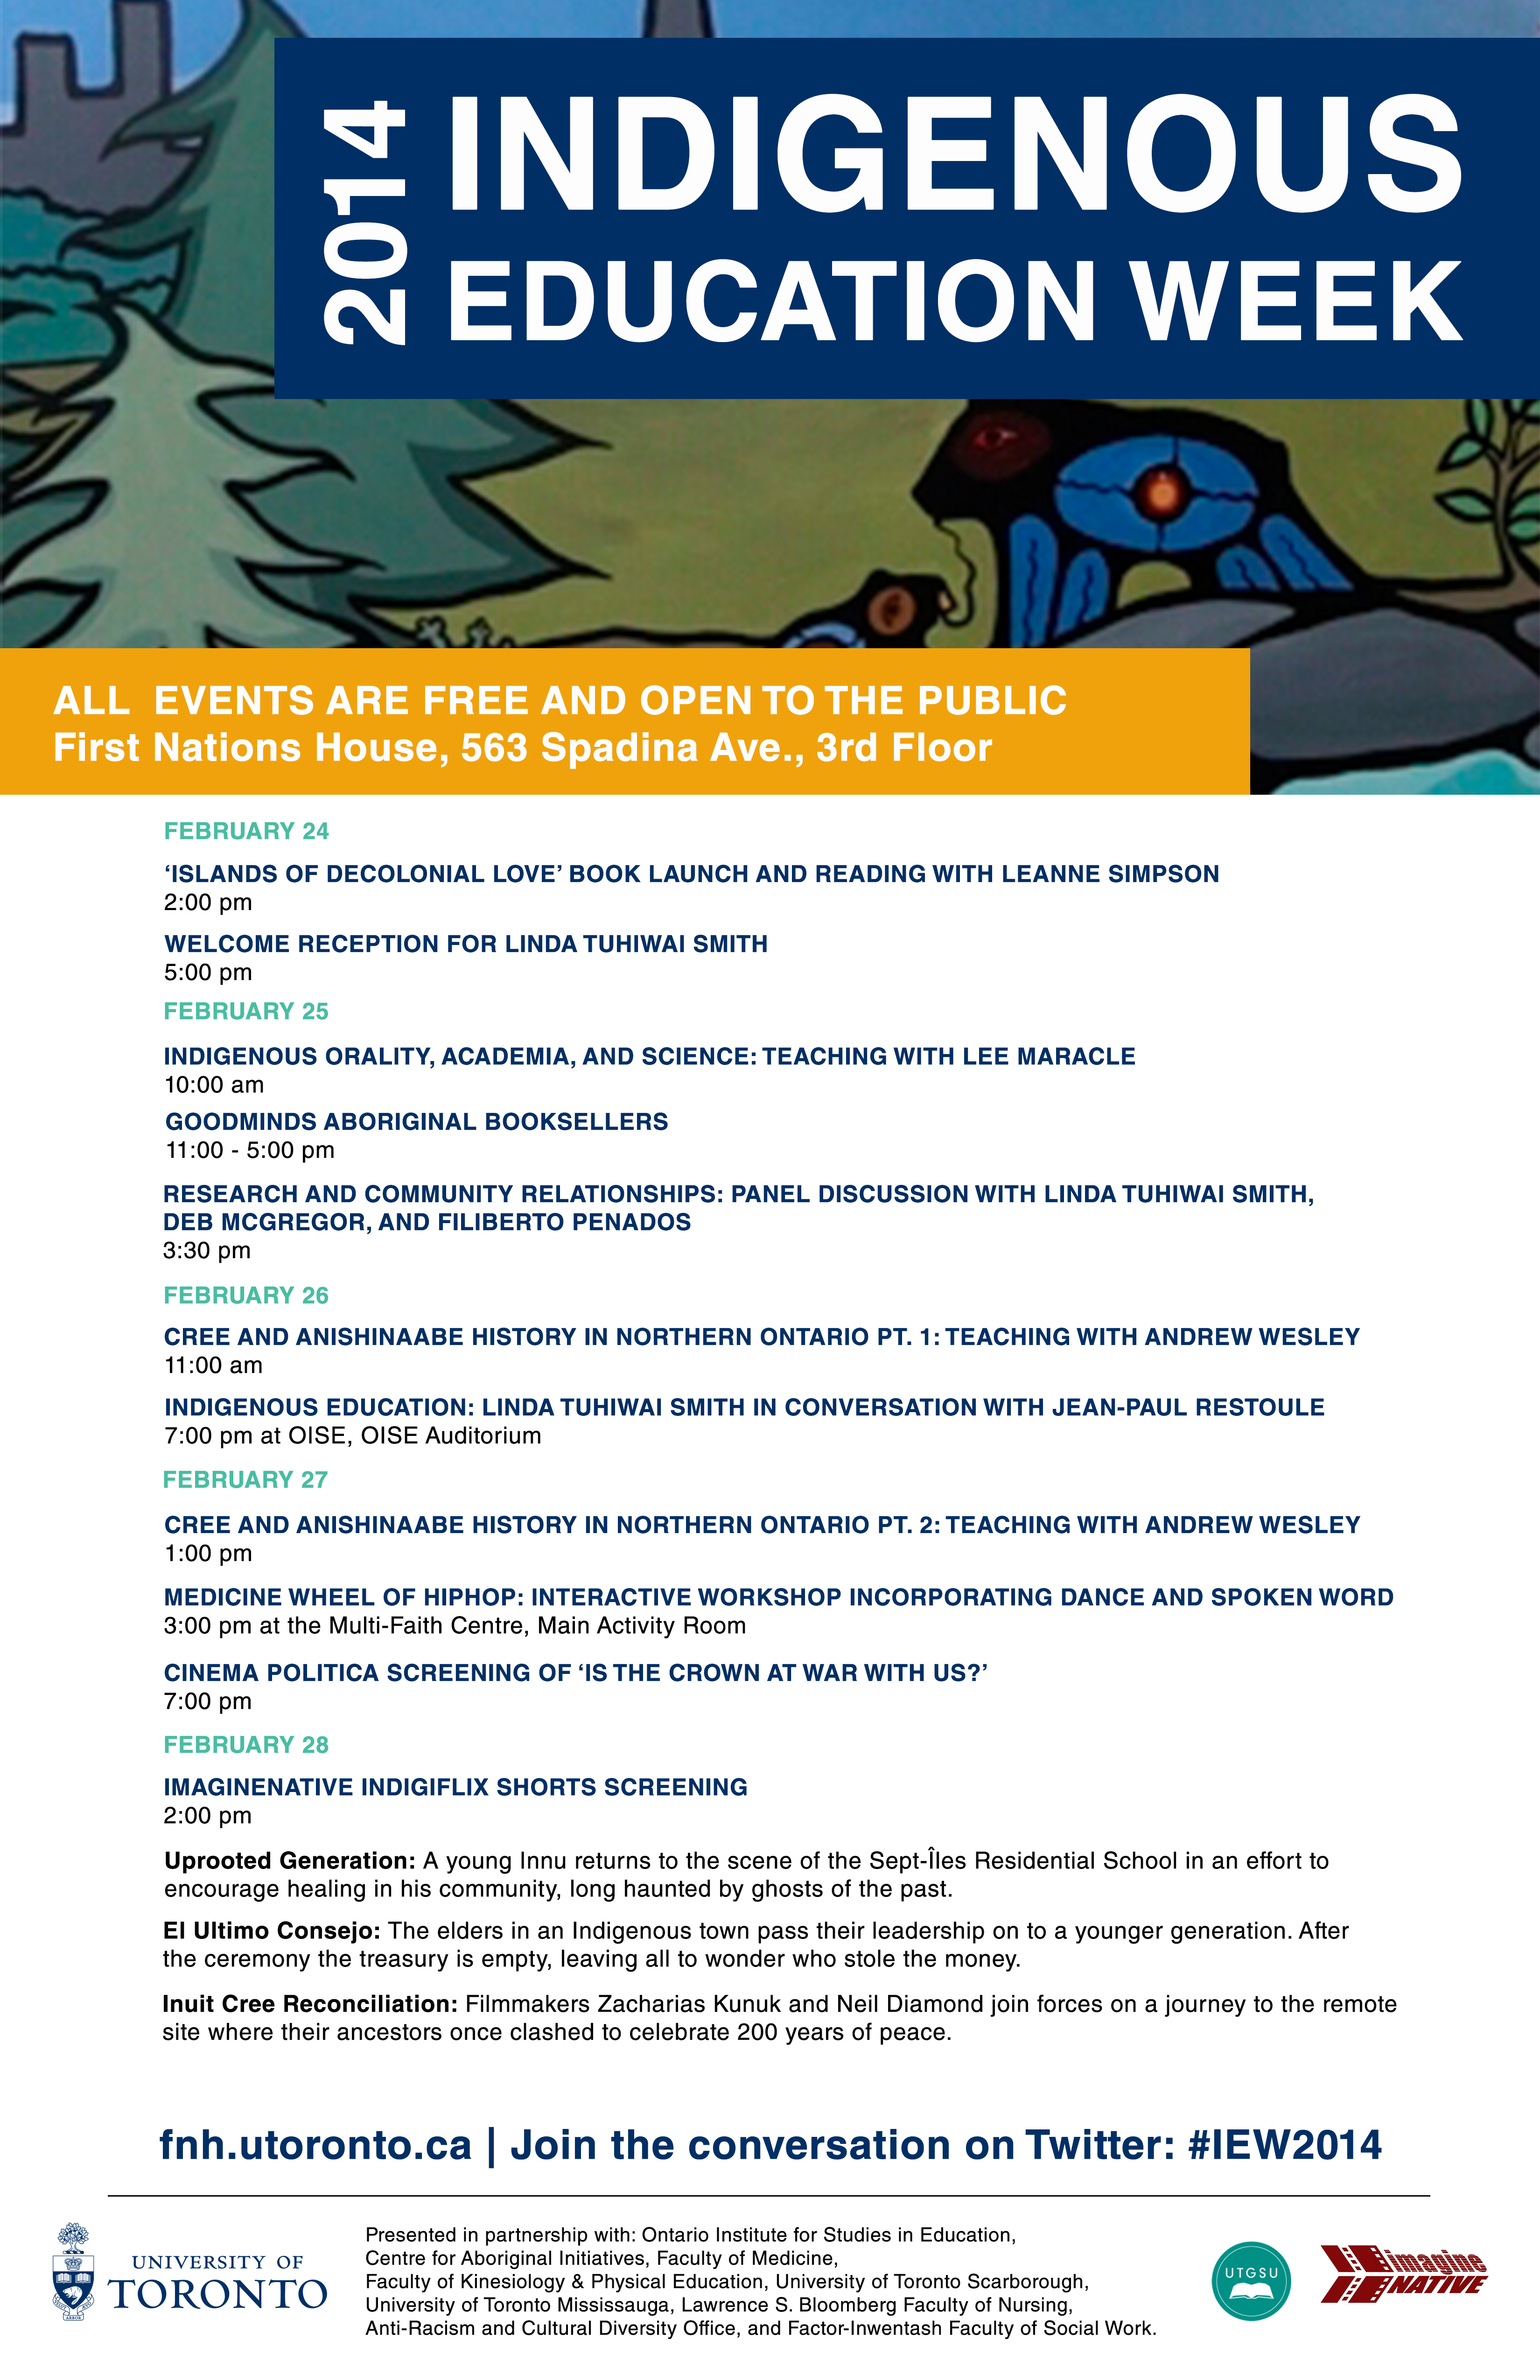 All you need to know http://www.fnh.utoronto.ca/Events-Experience/Aboriginal-Awareness-Week.htm